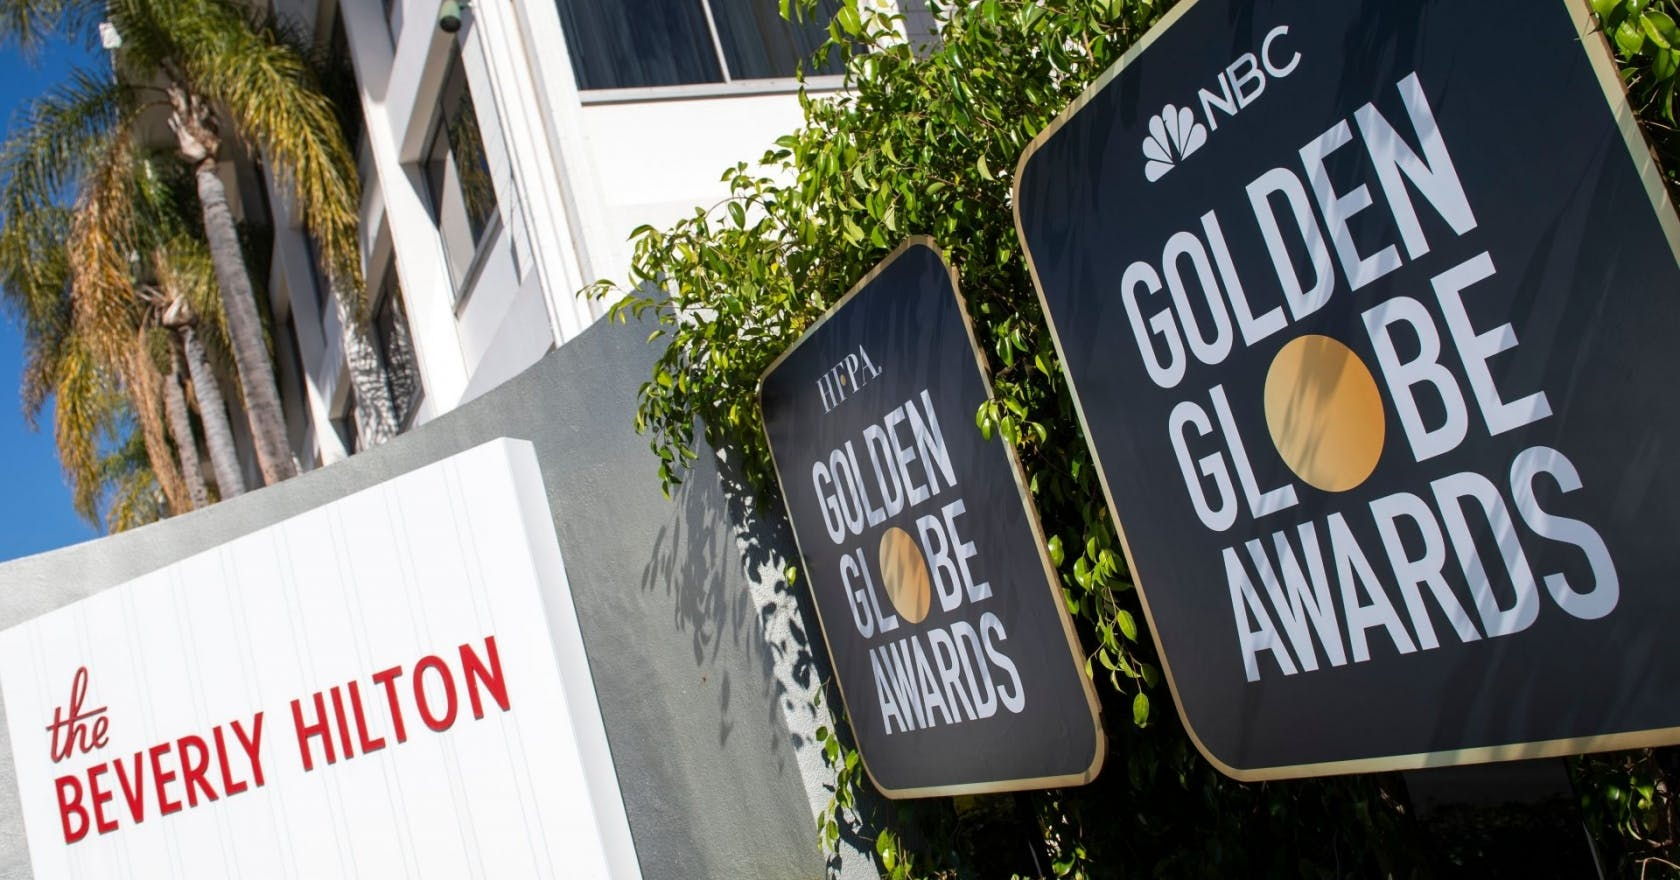 Why tonight's Golden Globes ceremony will be one steeped in controversy